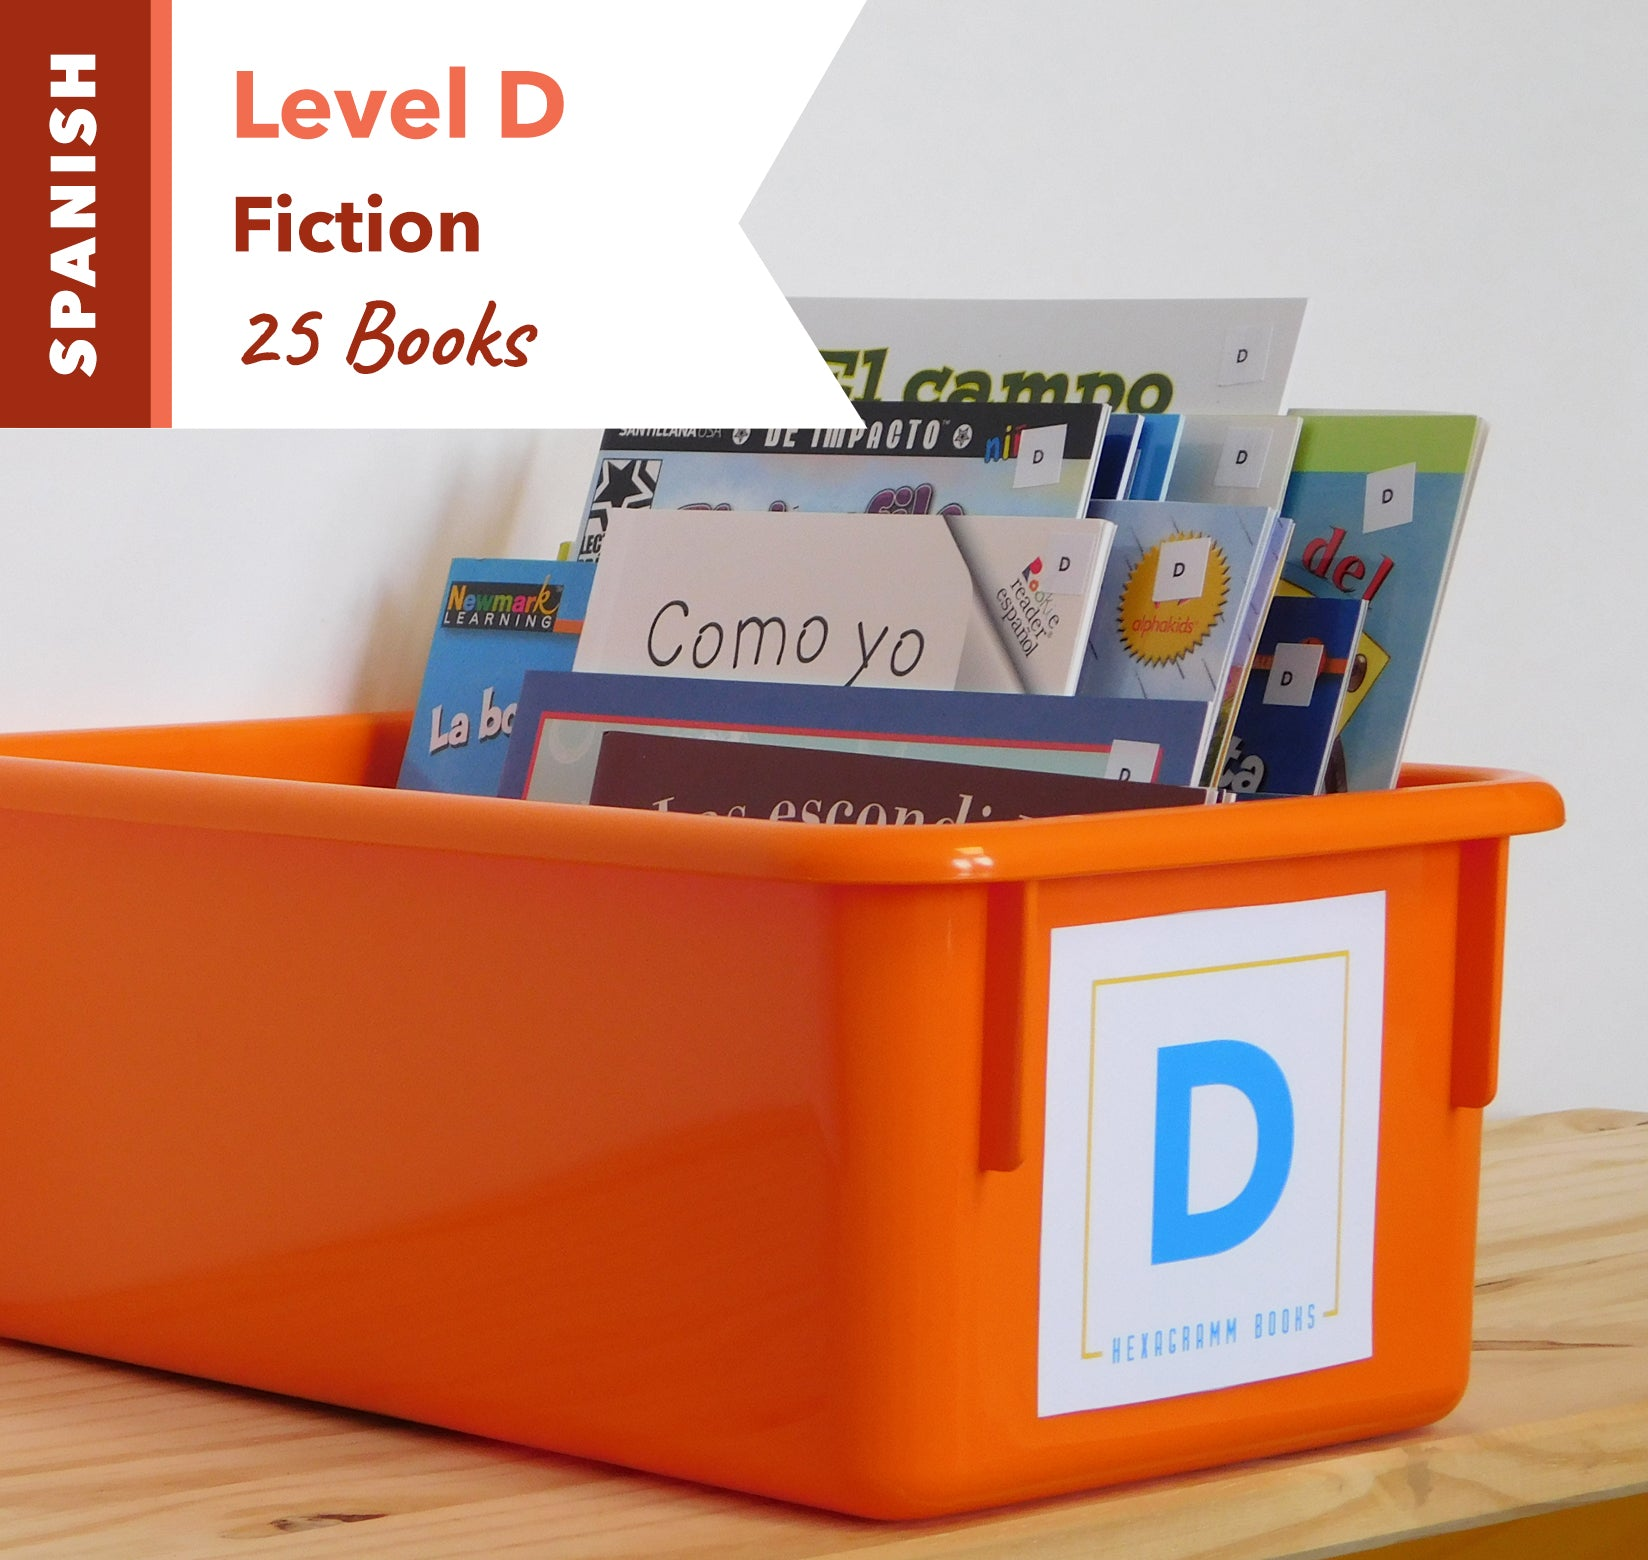 Level D, Bundle of 25 (Fiction) Spanish